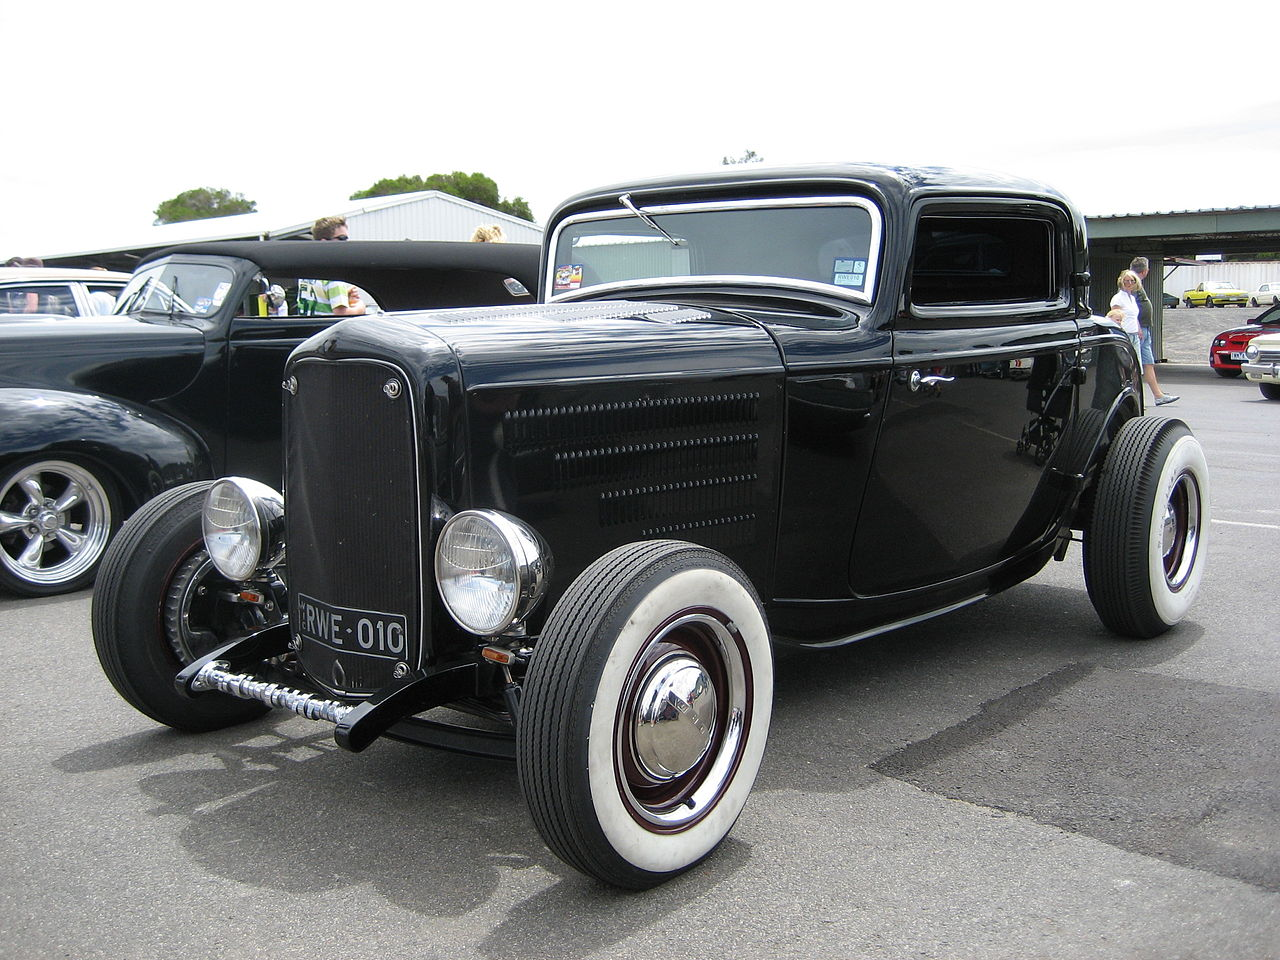 File:1932 Ford 3 Window Coupe Hot Rod (4).jpg - Wikimedia Commons